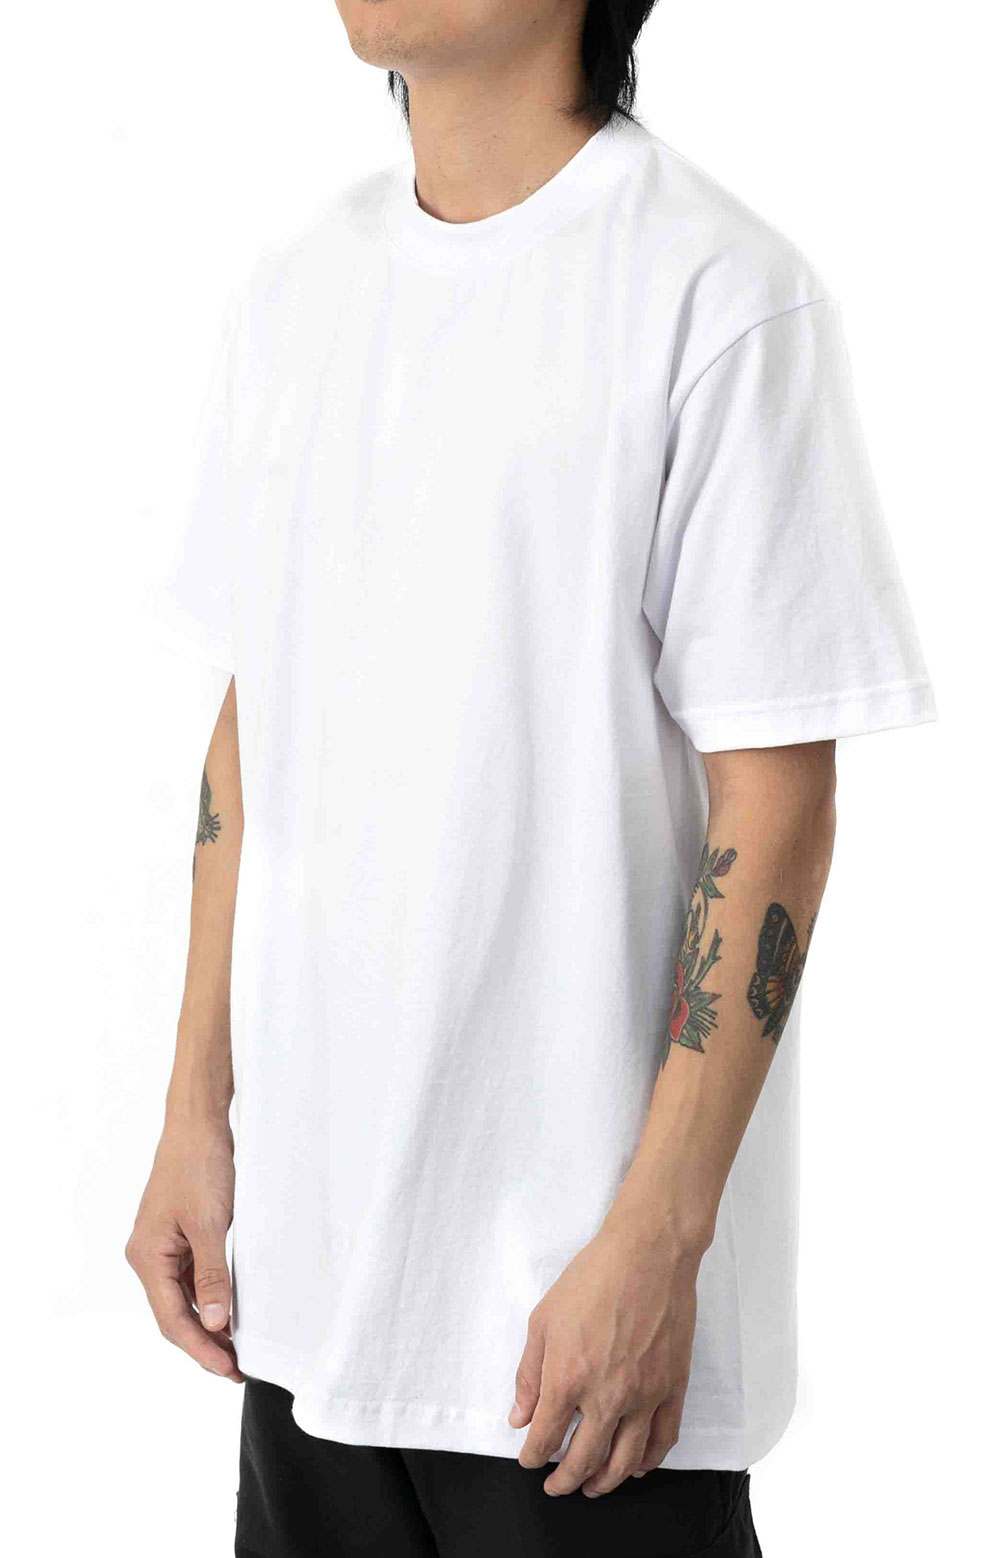 Max Heavyweight S/S T-Shirt - White 2